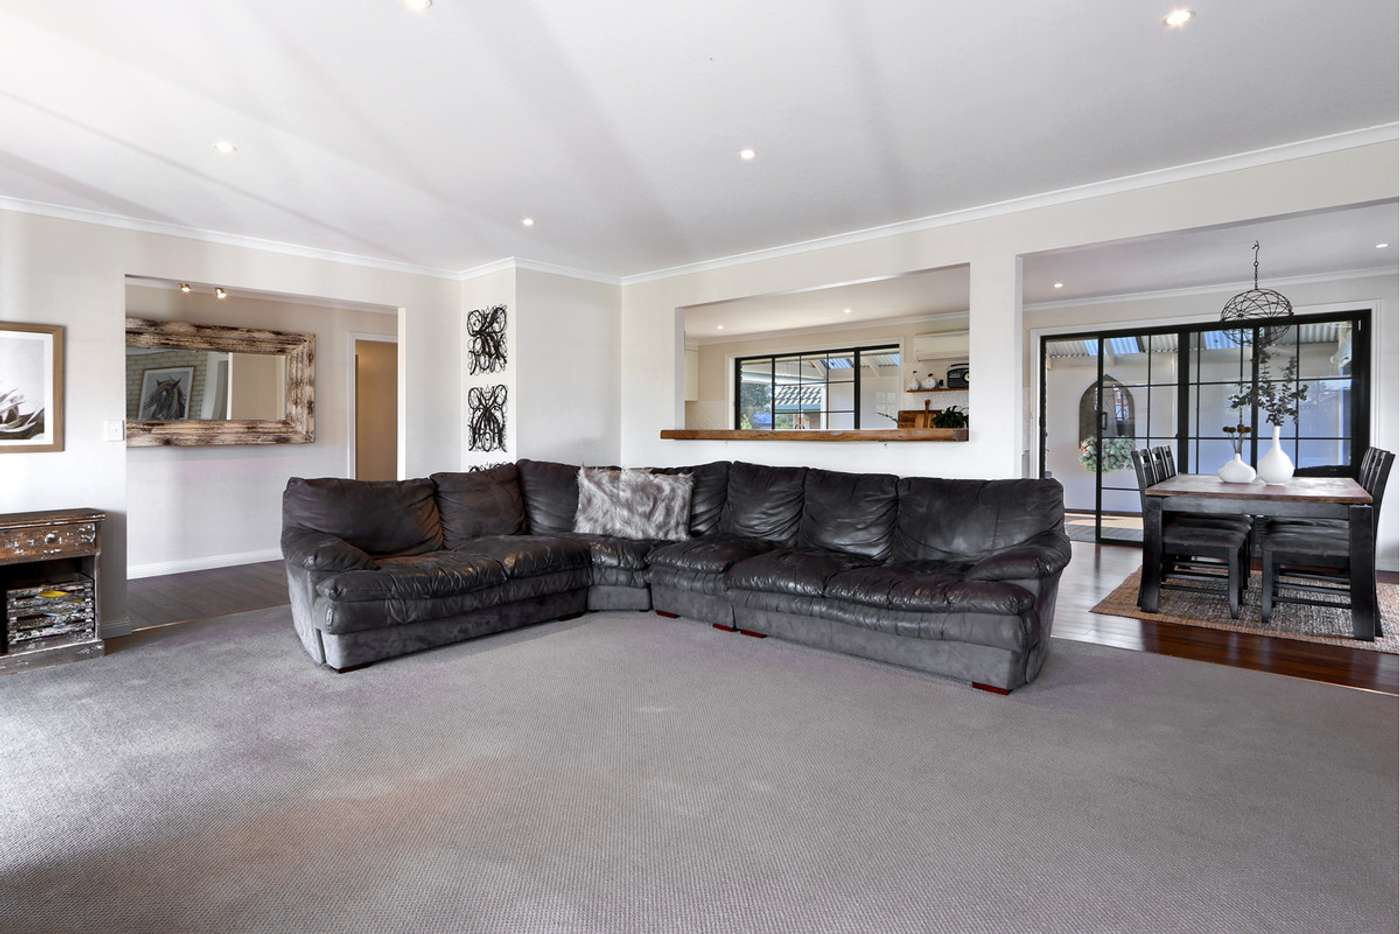 Sixth view of Homely house listing, 26 Rebecca Drive, Sale VIC 3850